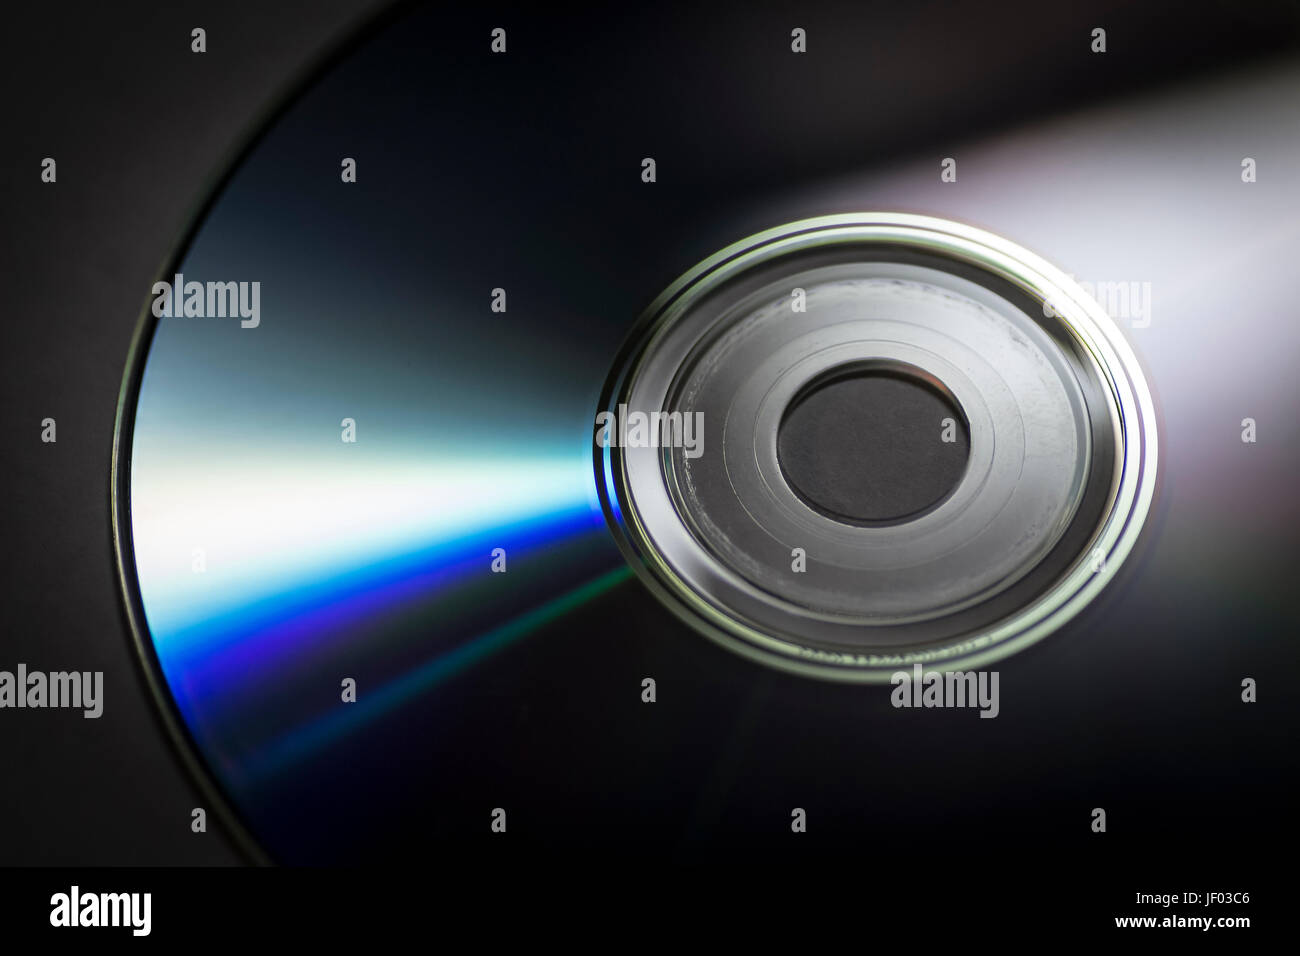 Compact disc close-up on a dark background. - Stock Image